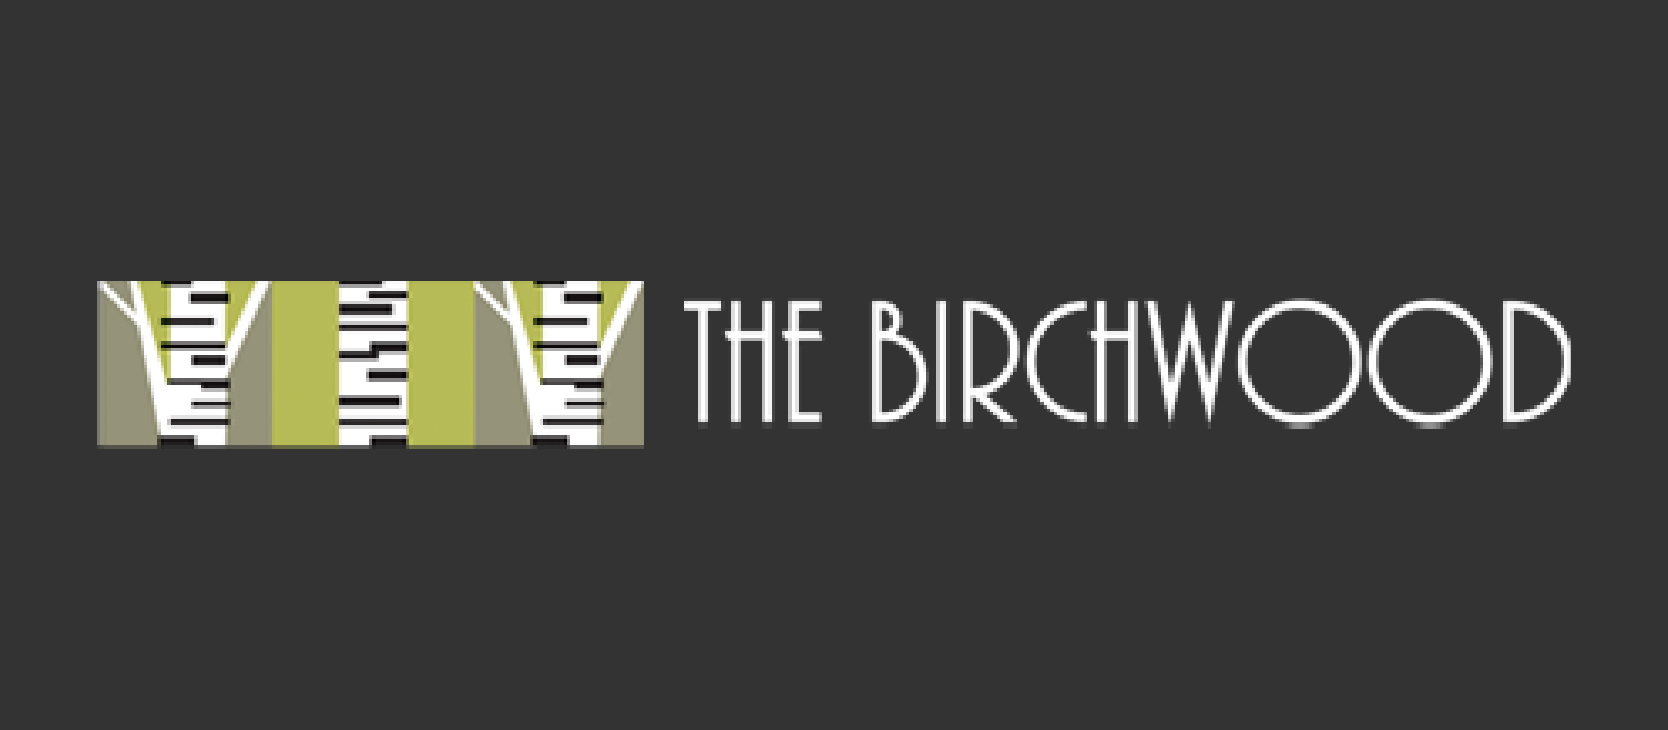 The Birchwood Inn